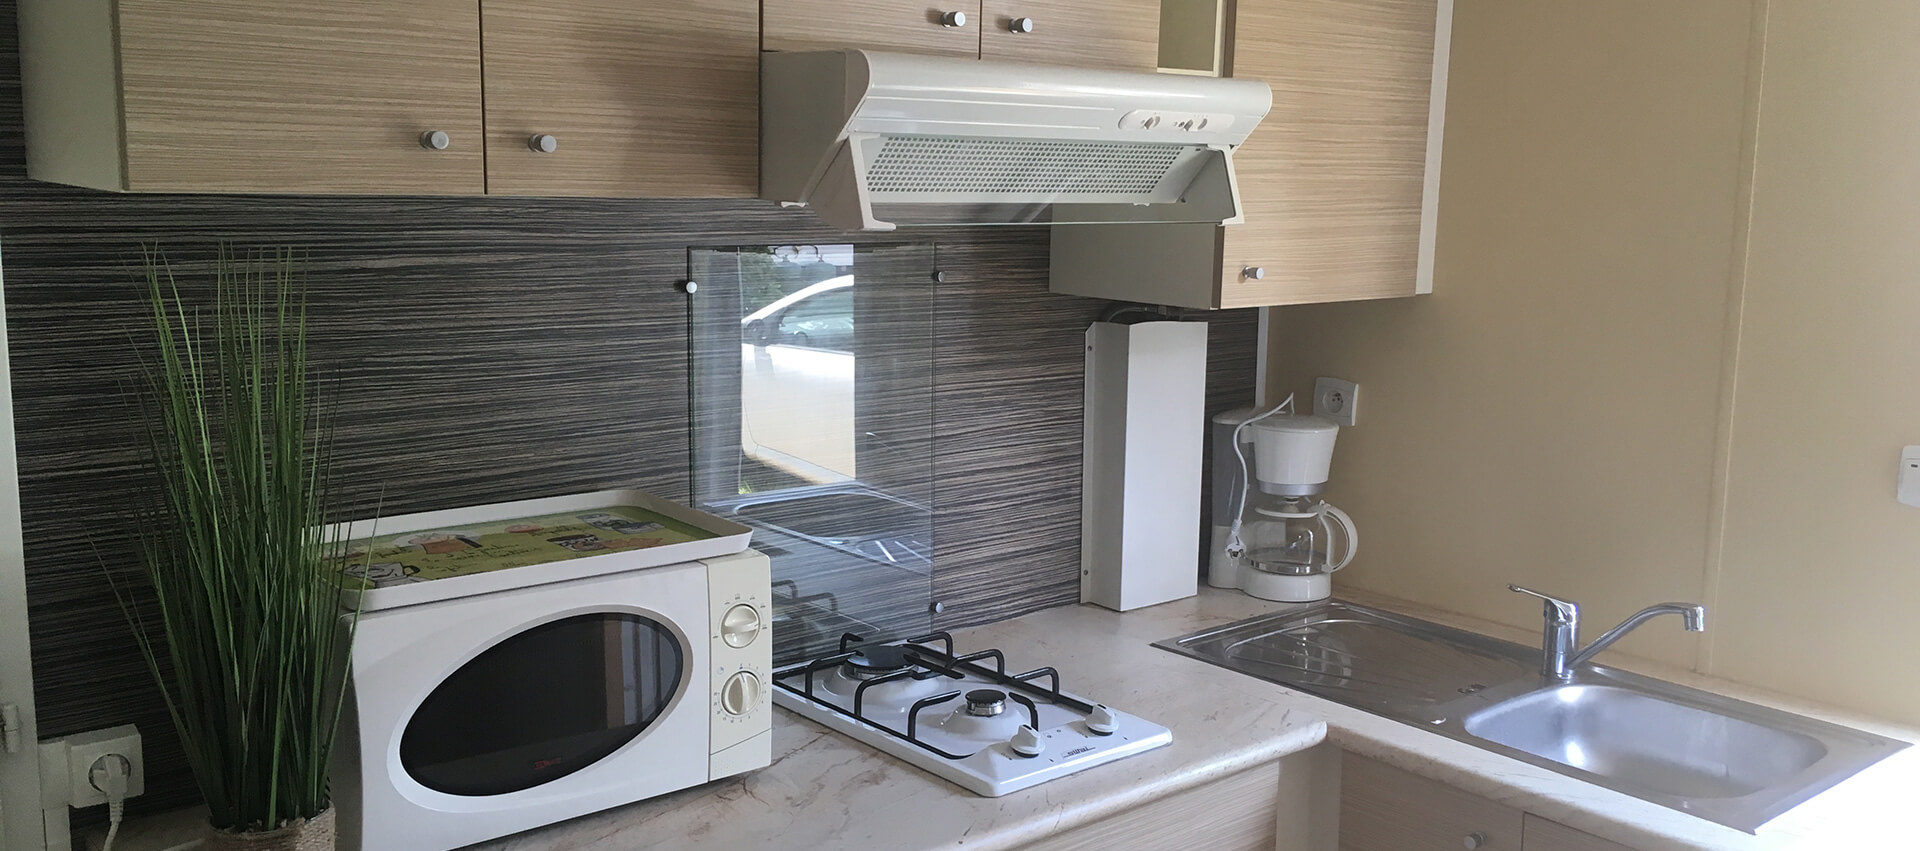 Kitchen of the Rêve mobile home up for rental located in Aveyron